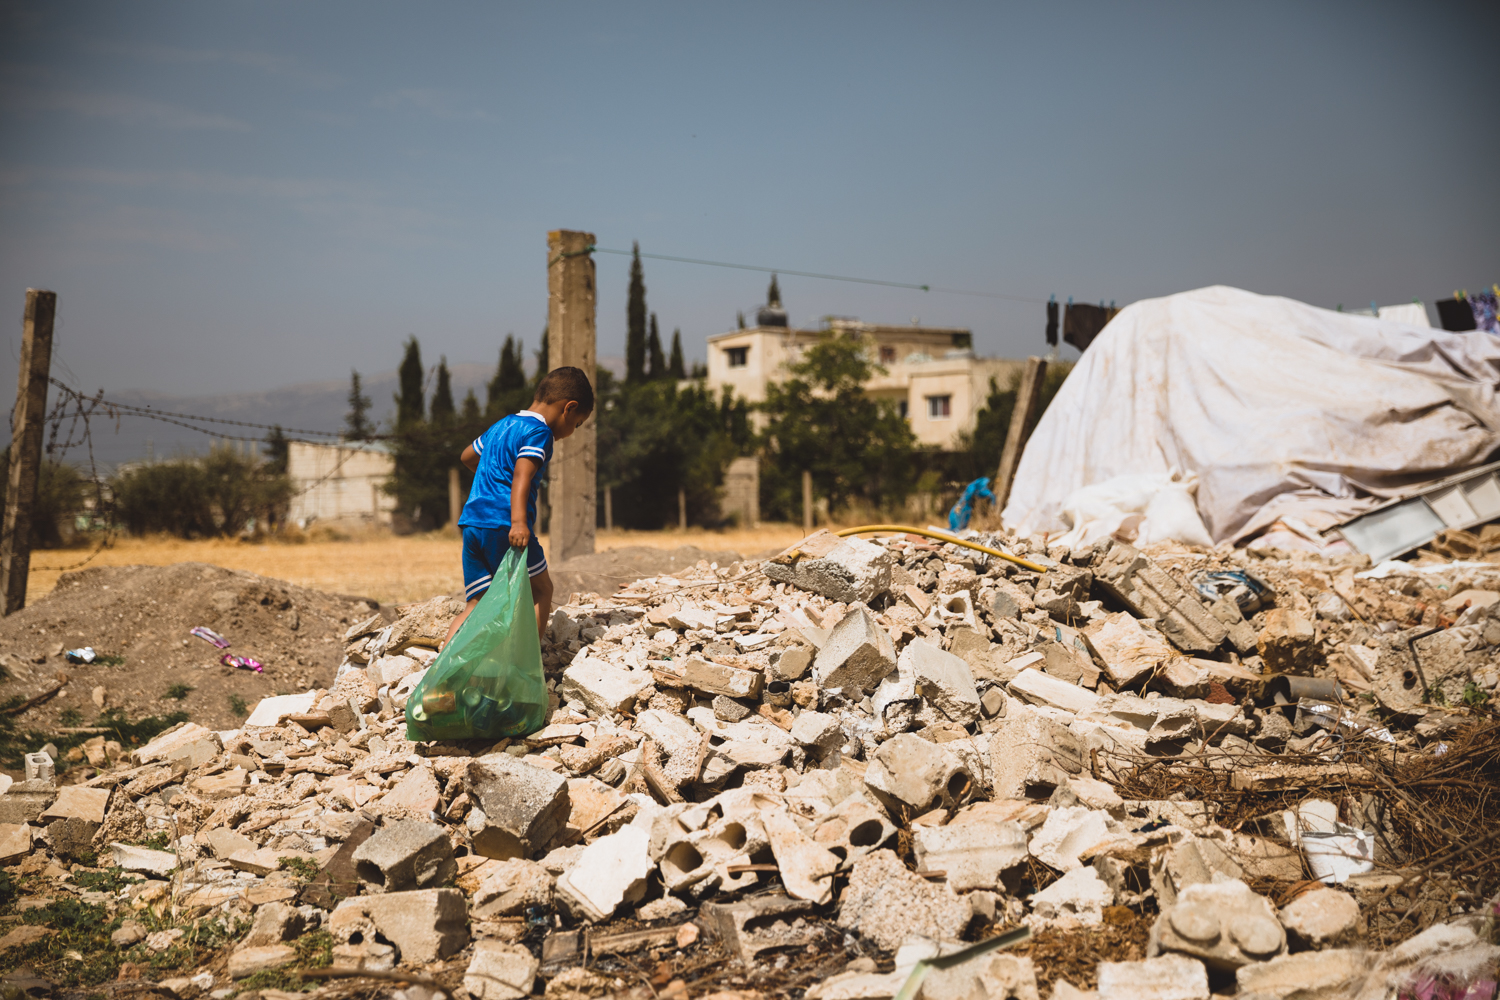 A young child drags trash across a rubble pile in a small camp in the Bekaa Valley.